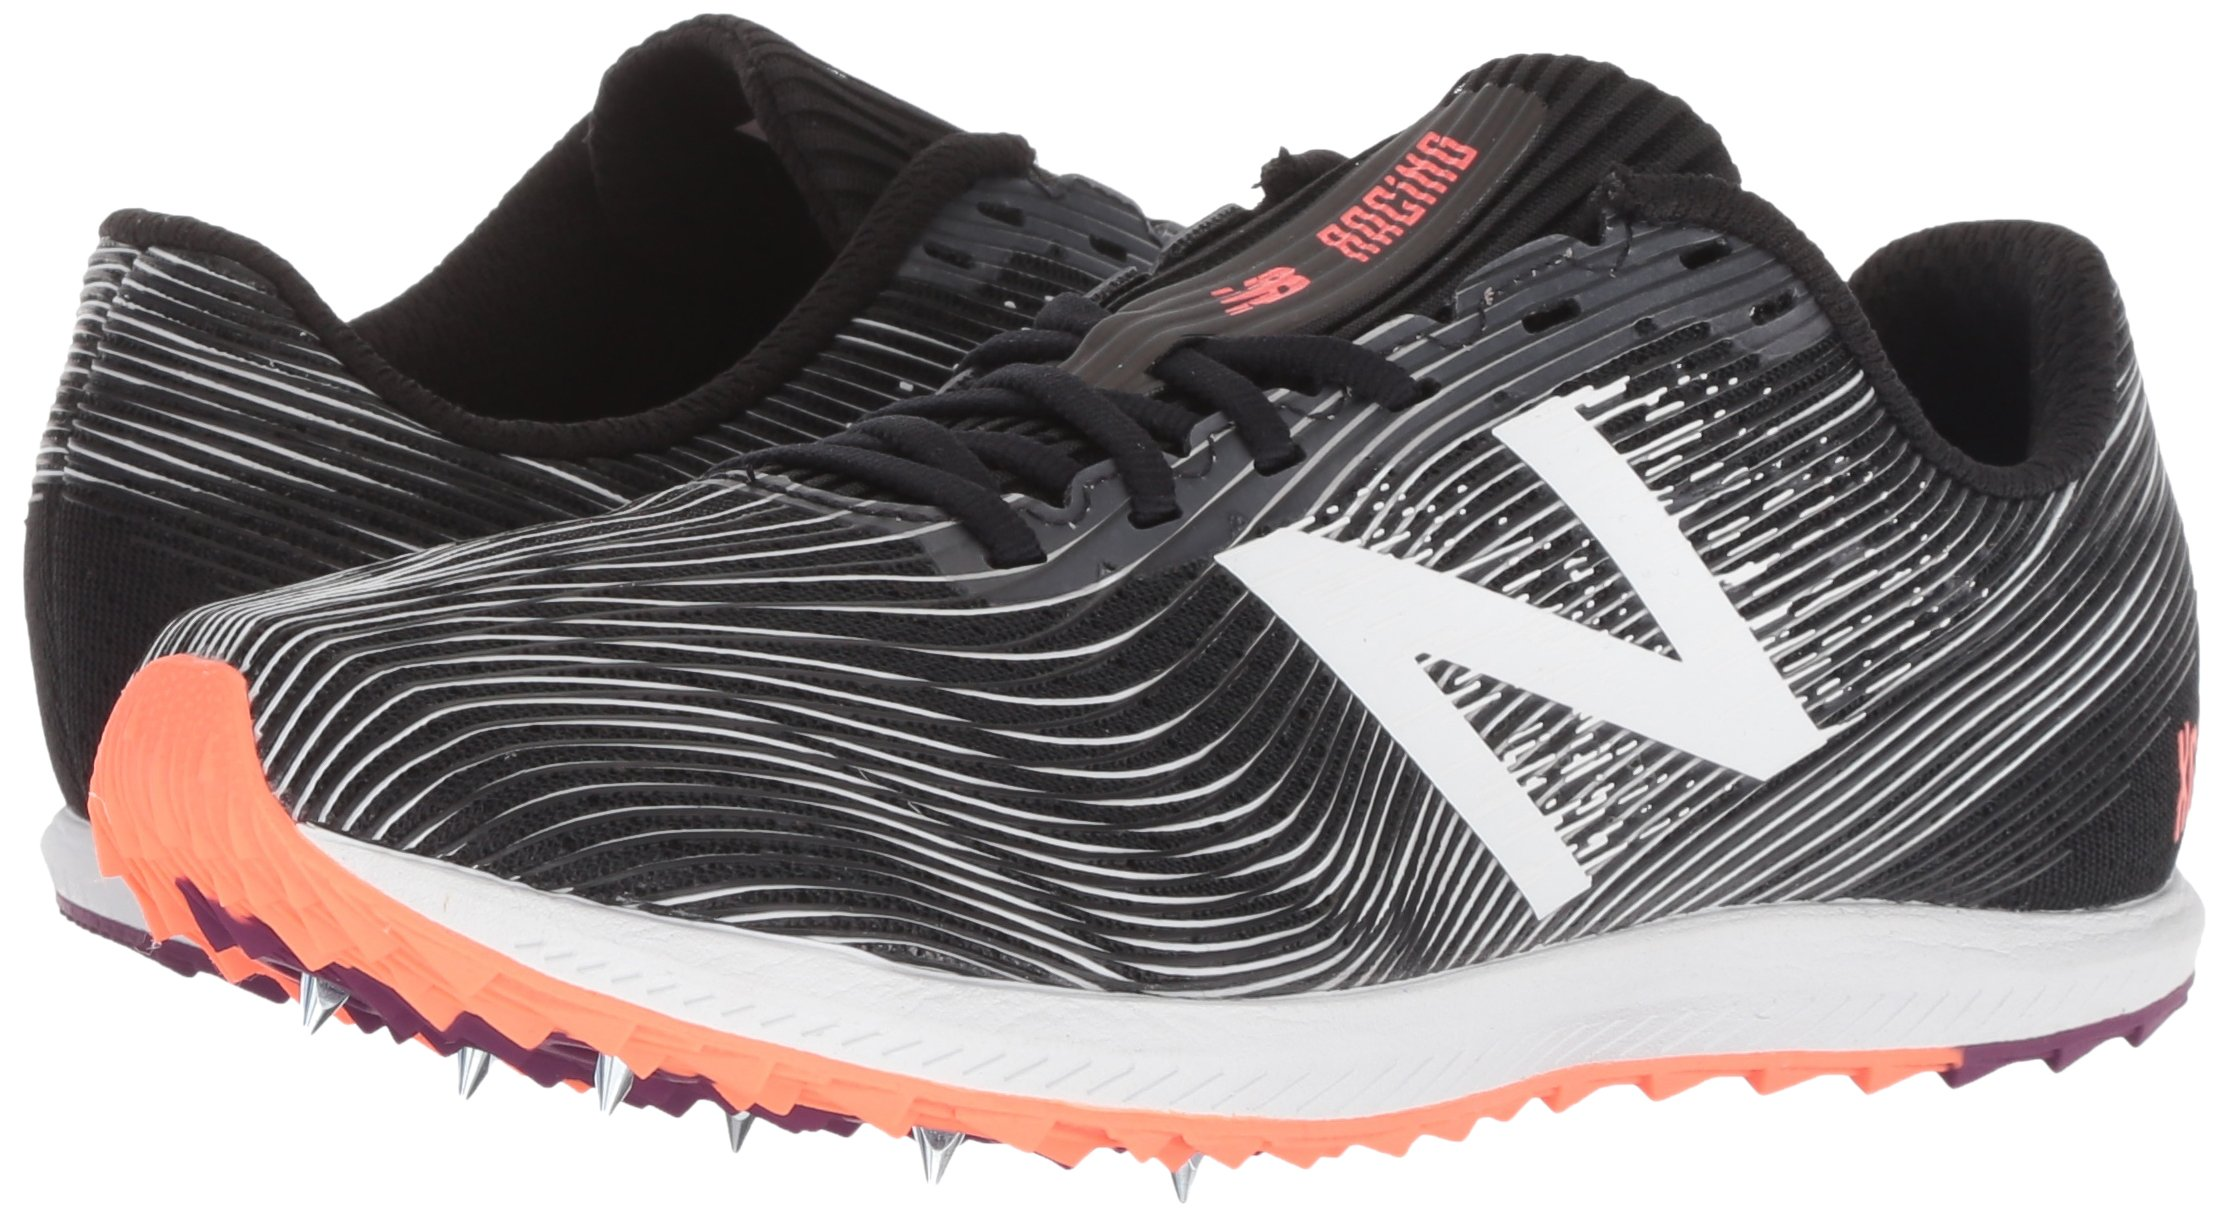 New Balance Women's 7v1 Cross Country Running Shoe Black, 5.5 B US by New Balance (Image #5)